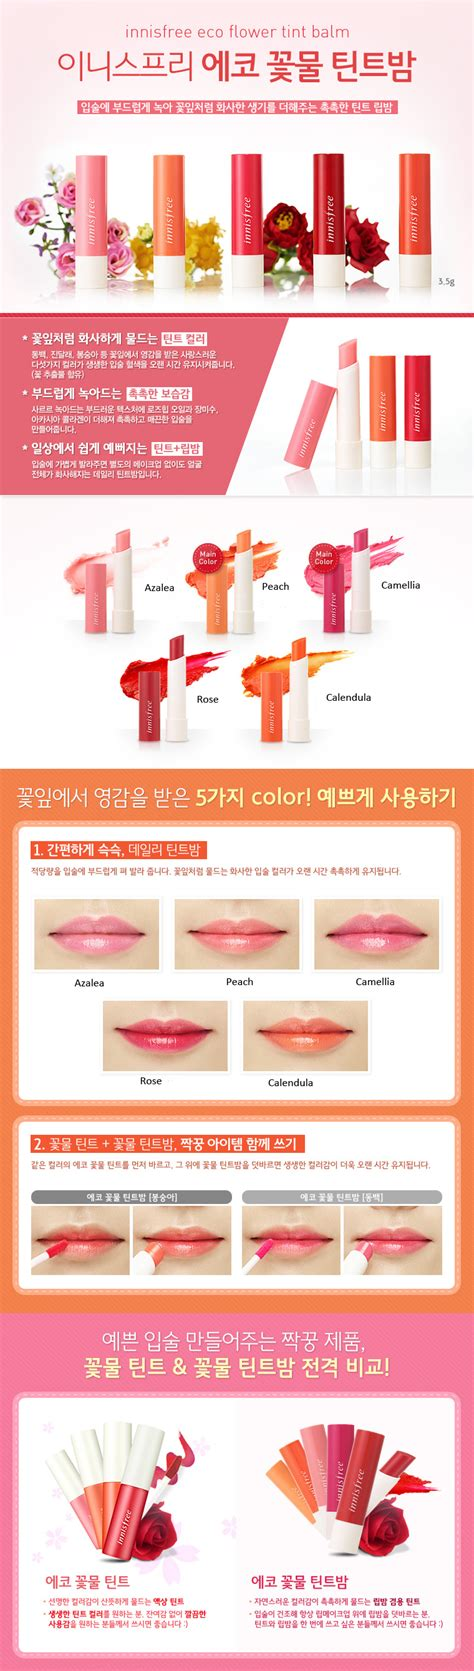 Harga Innisfree Eco Flower Tint Balm innisfree eco flower tint balm 3 5g 5 colors one